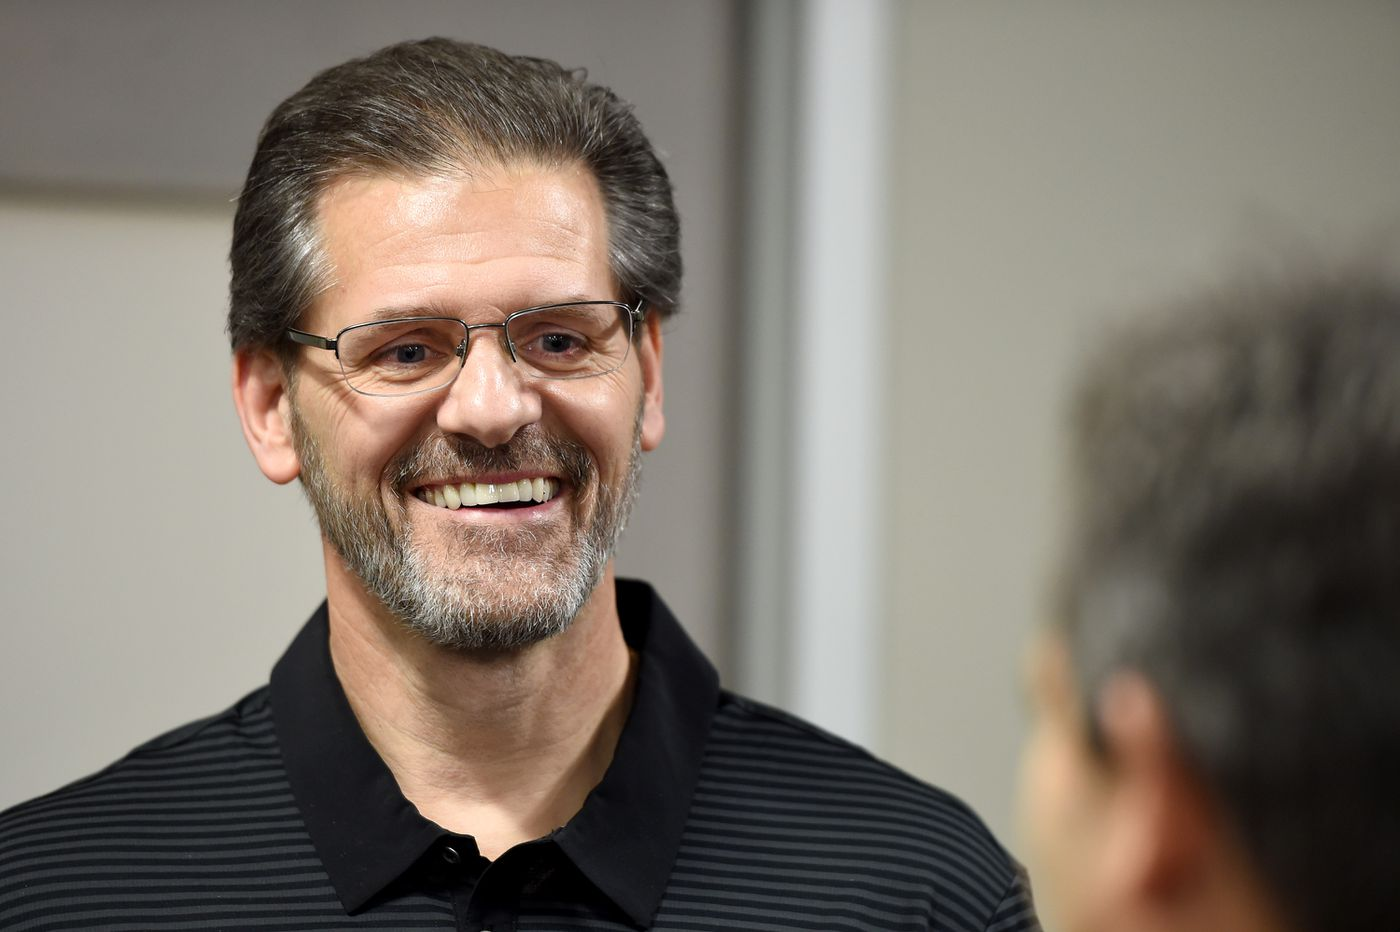 All you need to know about Ron Hextall and his Flyers plan comes down to one trade | Mike Sielski